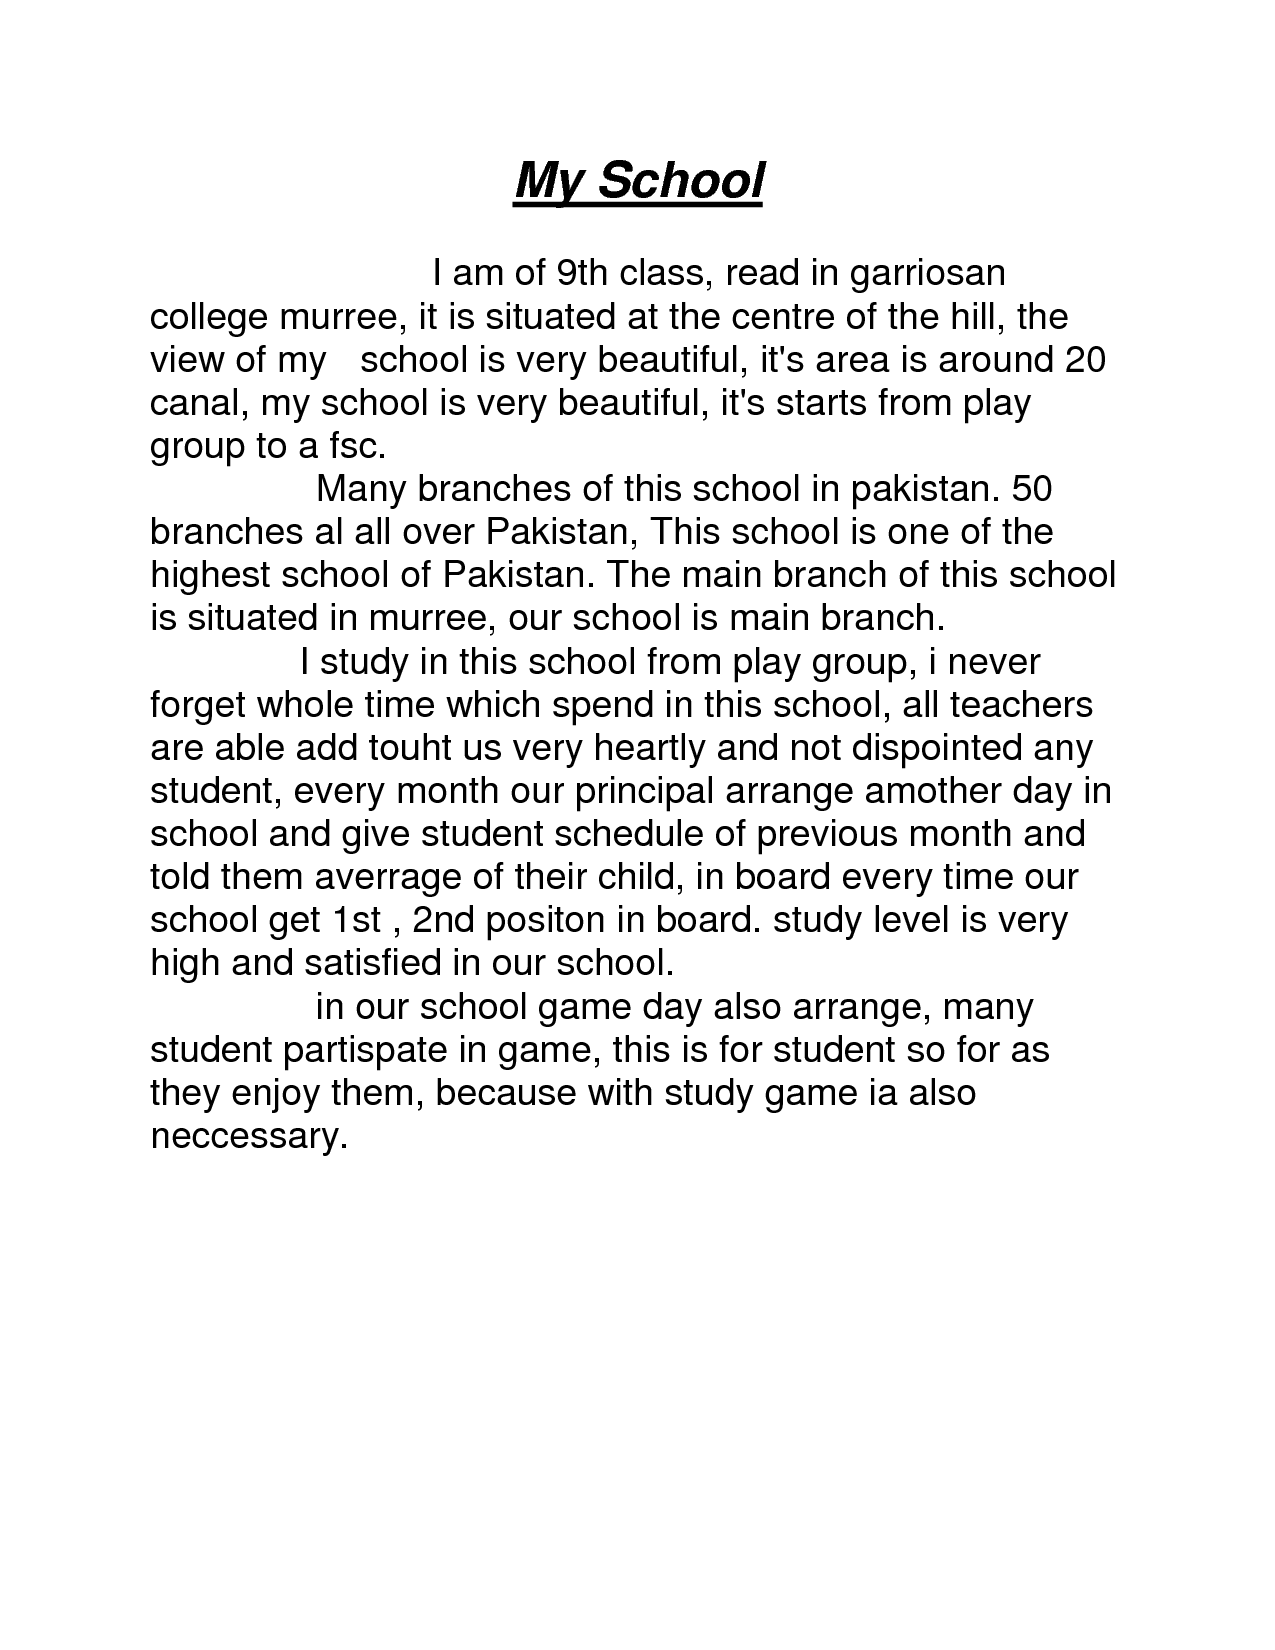 001 Essay On School Example Excellent Florida Shooting Uniform Is Necessary Full